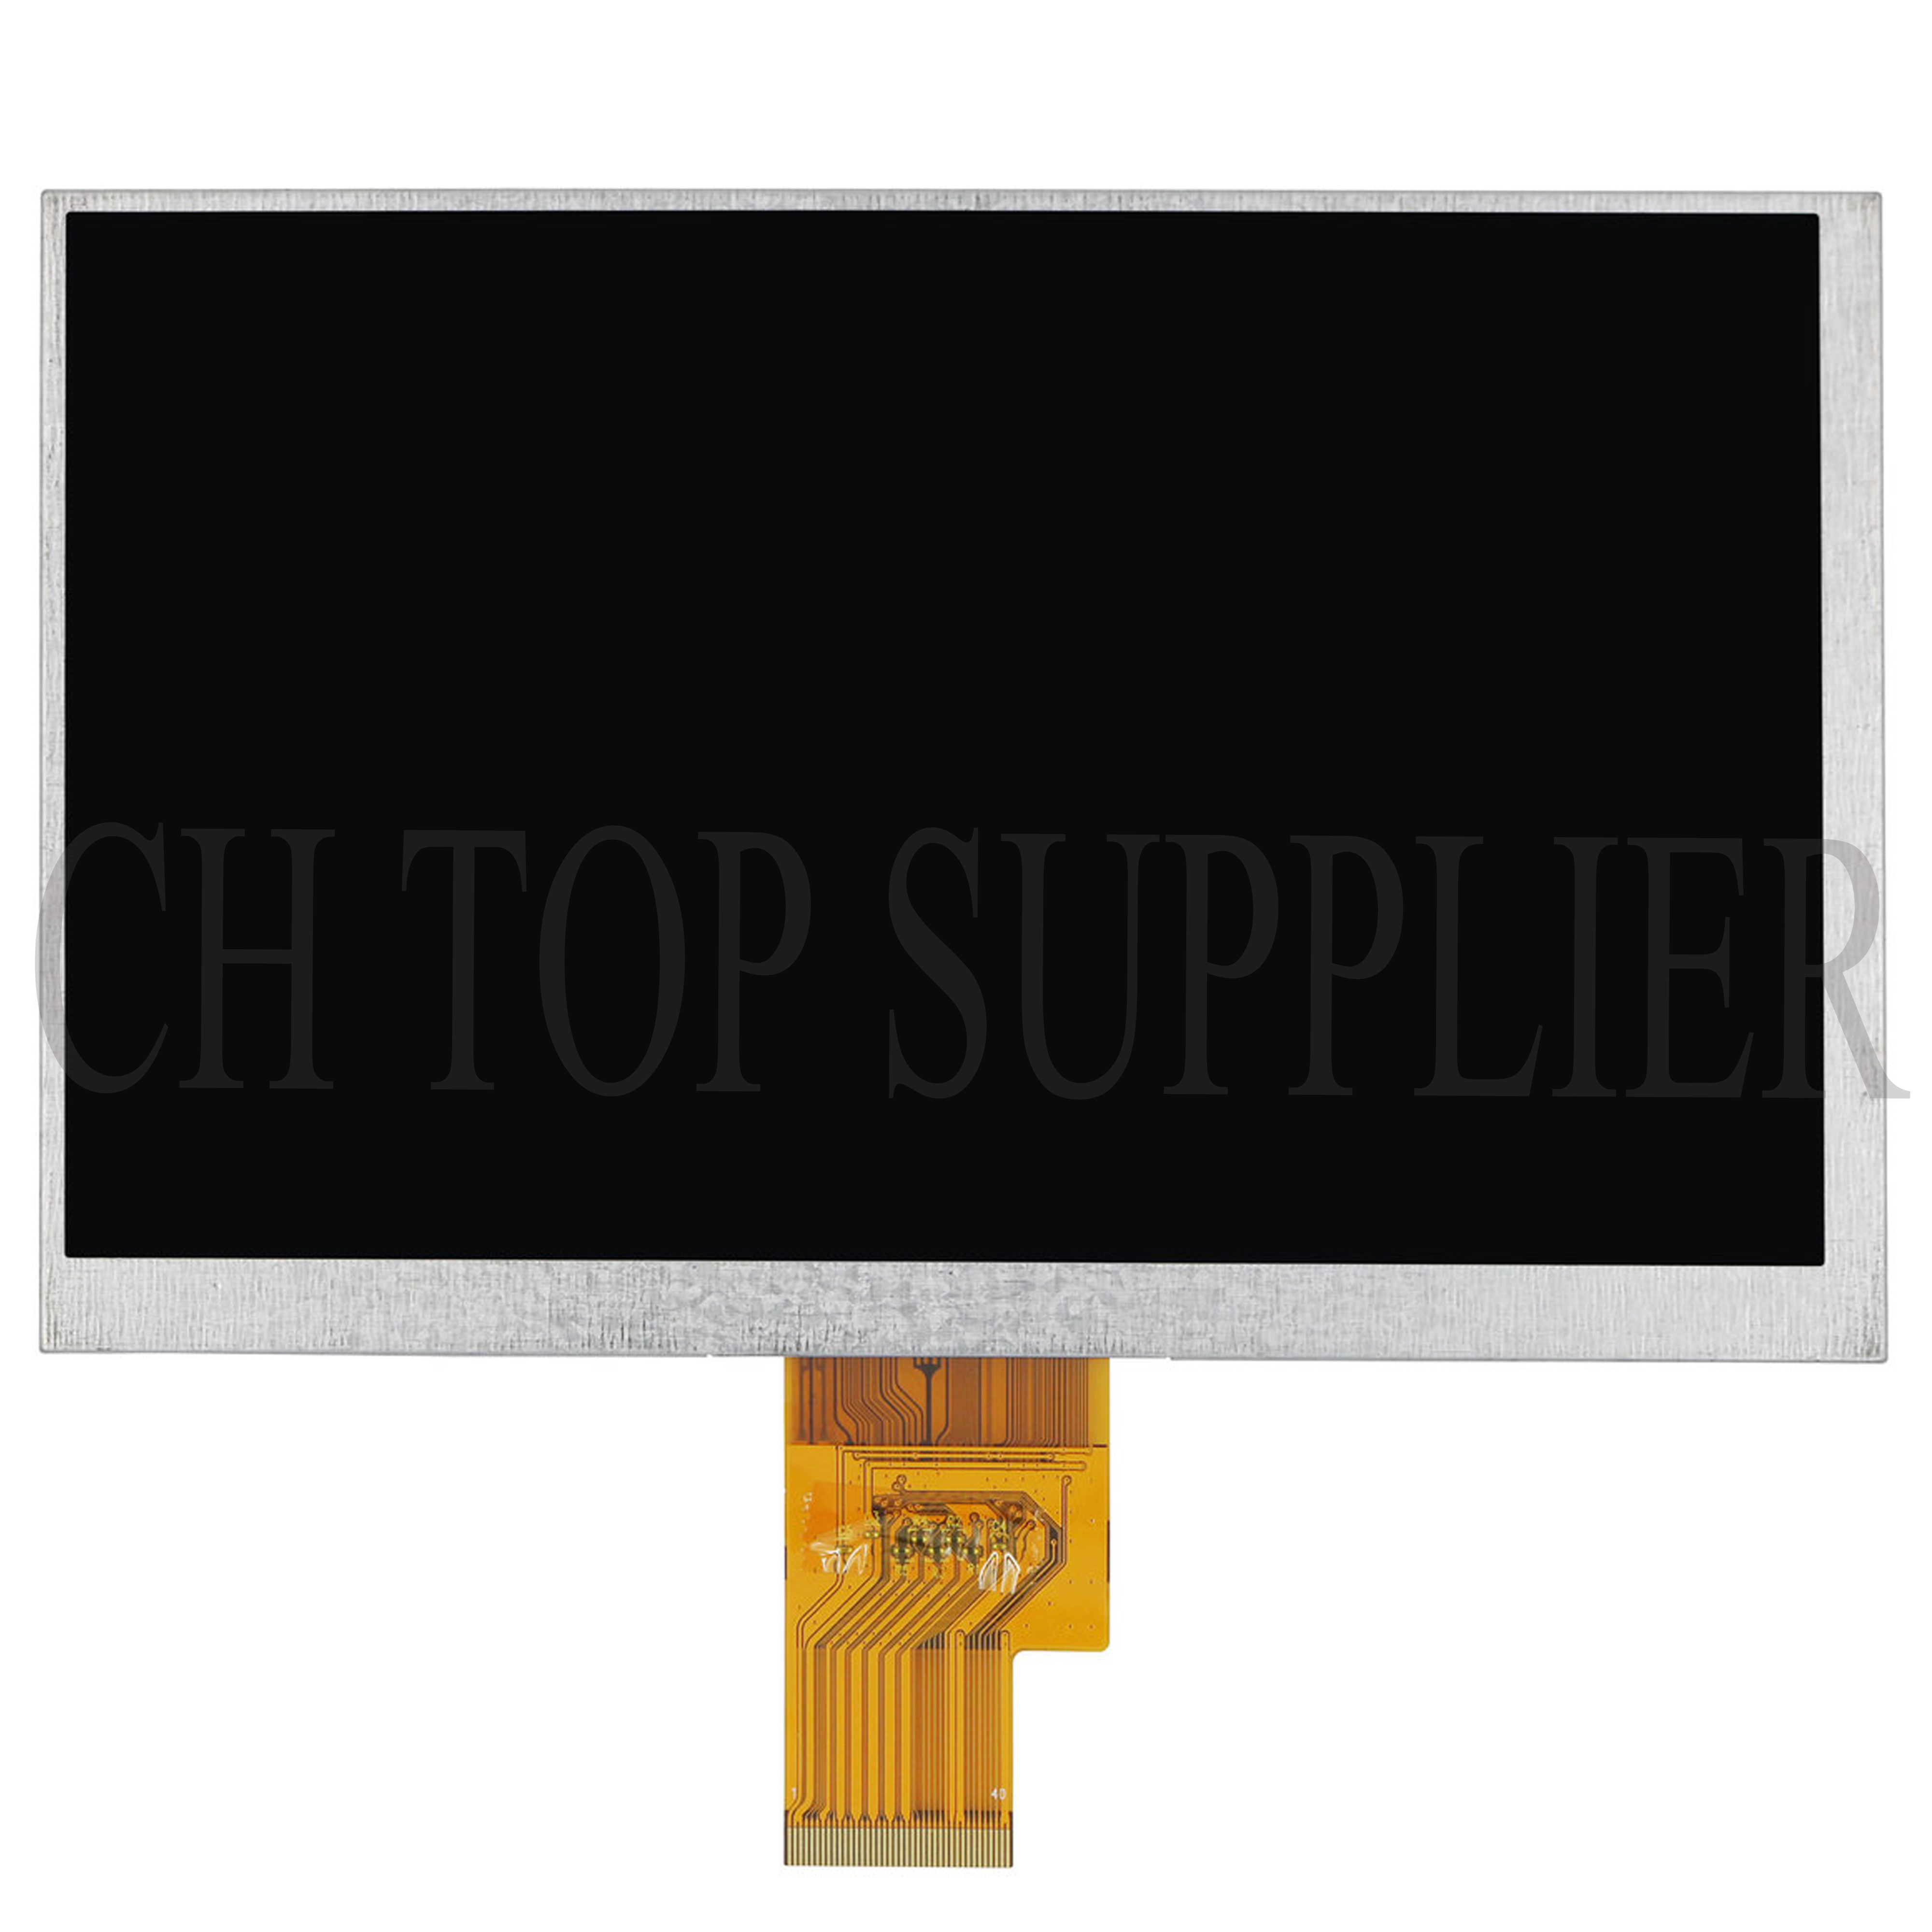 Original 7inch LCD screen CLAA070NQ01 XN for HP slate 7 tablet pc dedicated 1024 * 600 IPS free shipping original 7inch lcd screen claa070nq01 xn for hp tablet pc dedicated 1024 600 ips free shipping